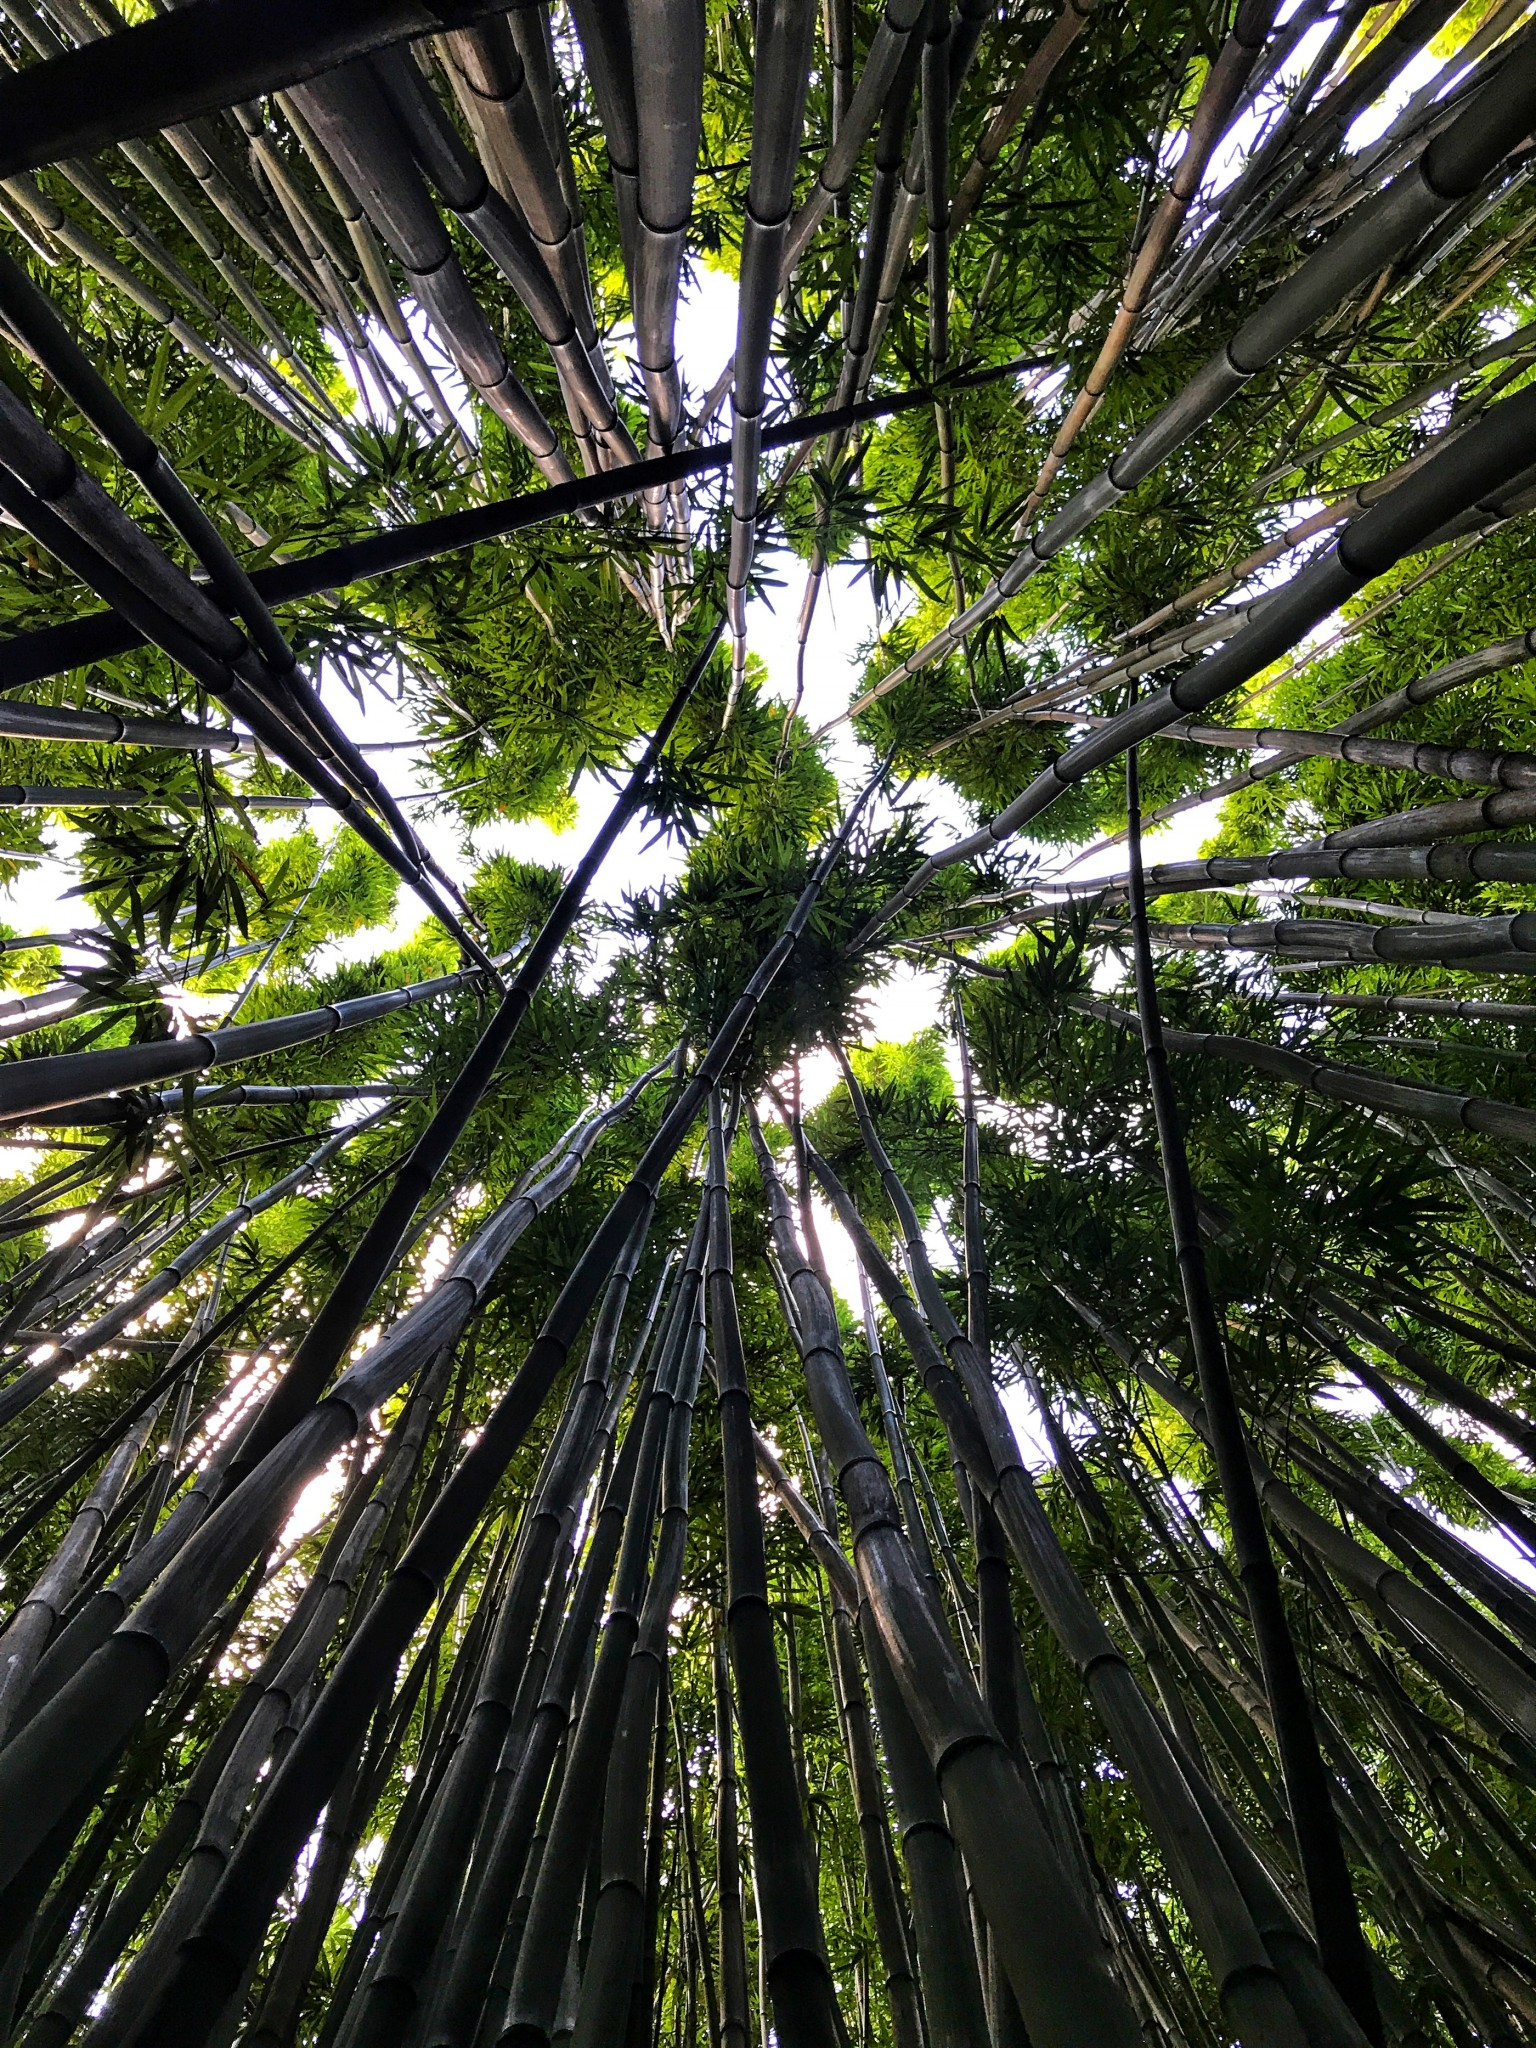 bamboo forest, road to hana, haleakala national park, the-alyst.com